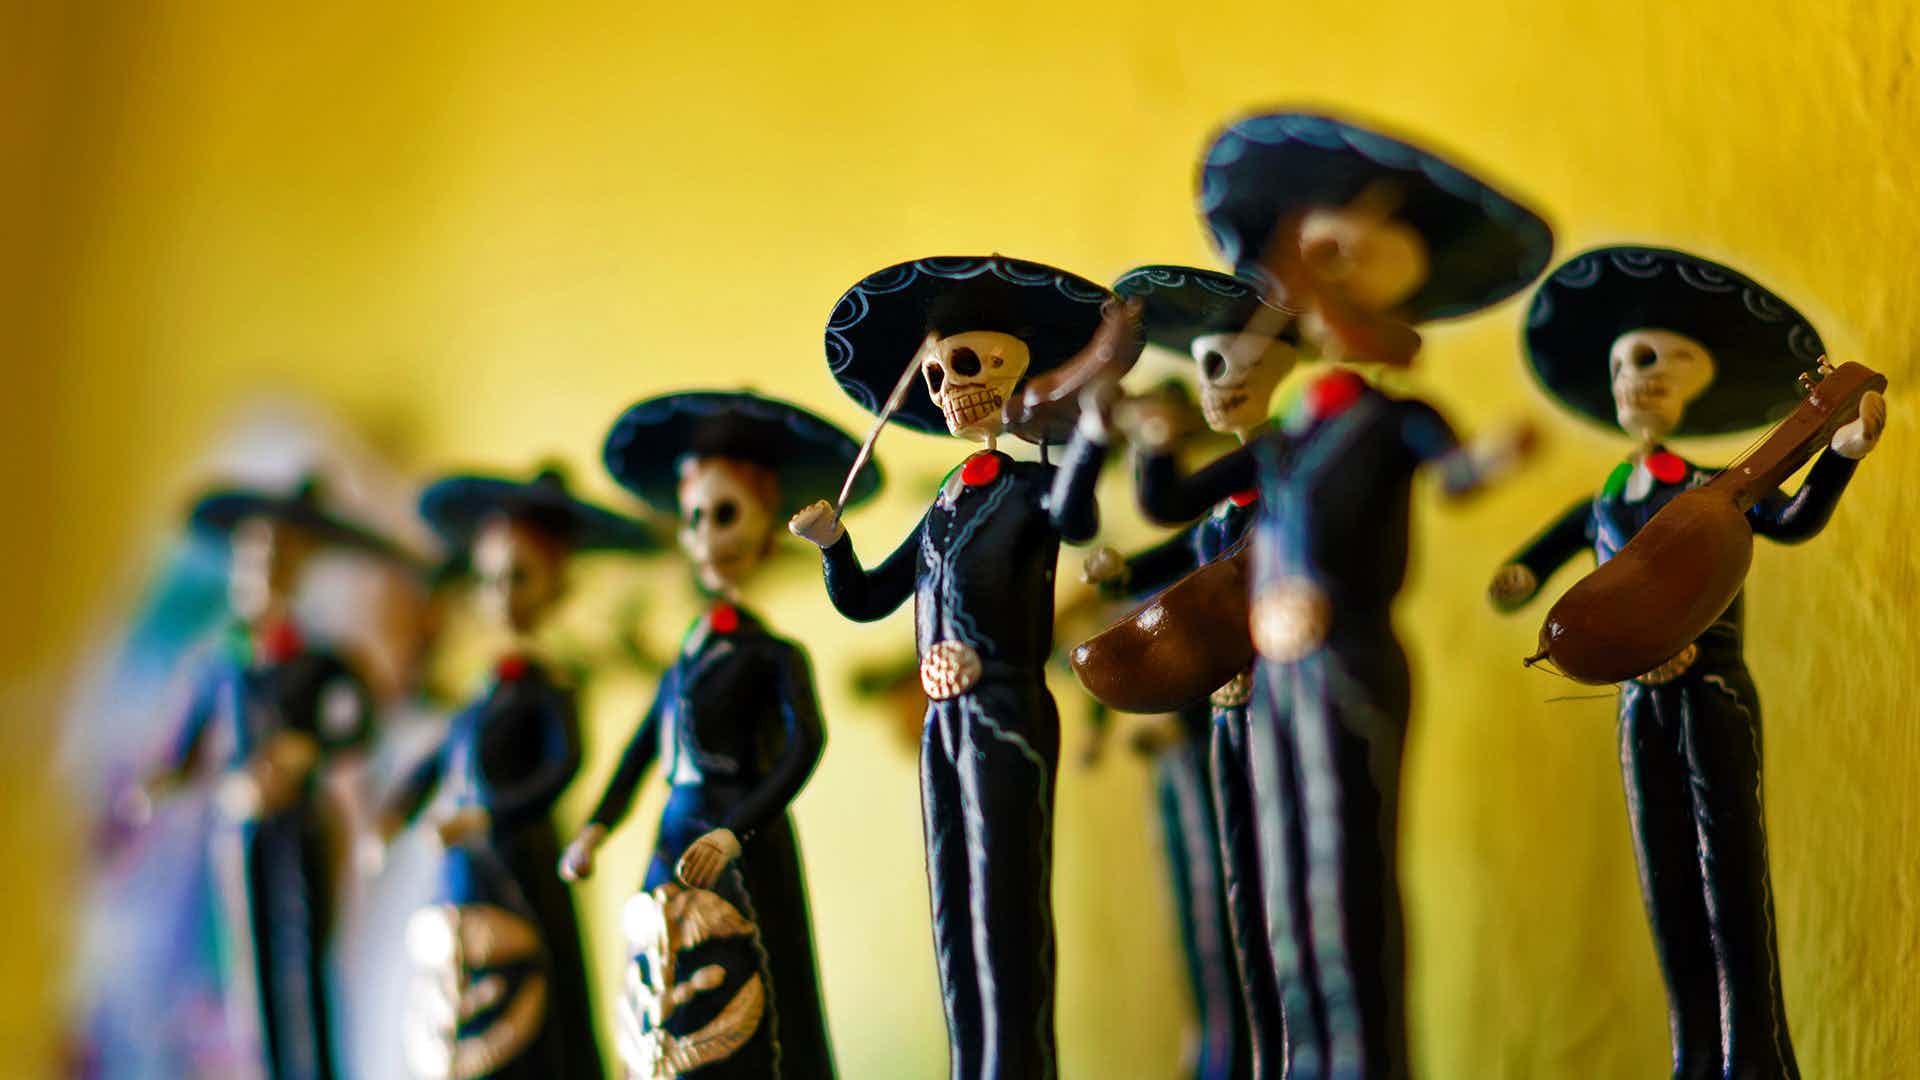 Mobile Mariachi Band Free Wallpaper and Backgrounds